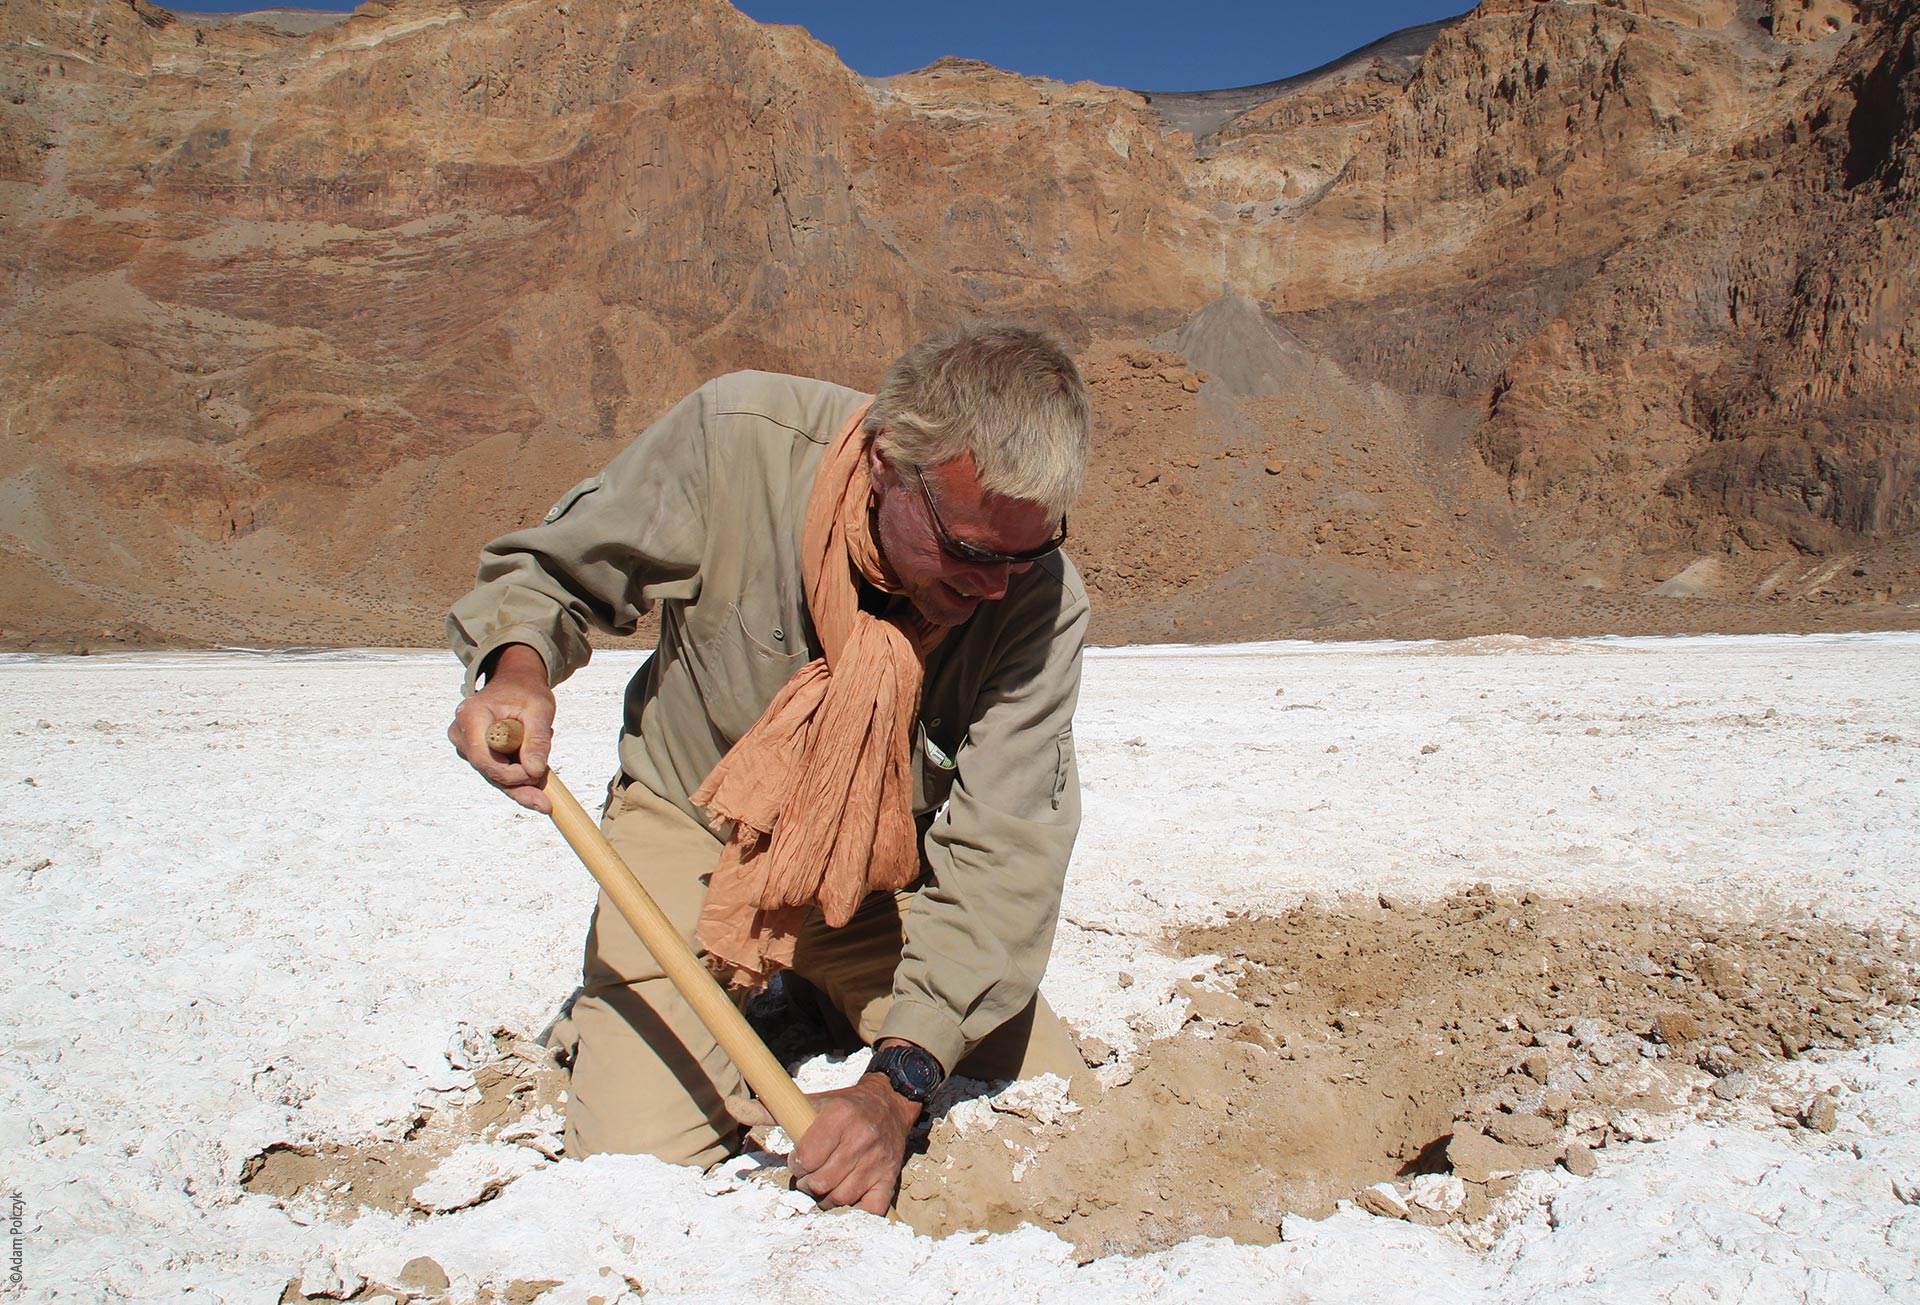 The Tibesti Mountains, Era Kohor, Stefan Kröpelin taking samples, Explore Chad